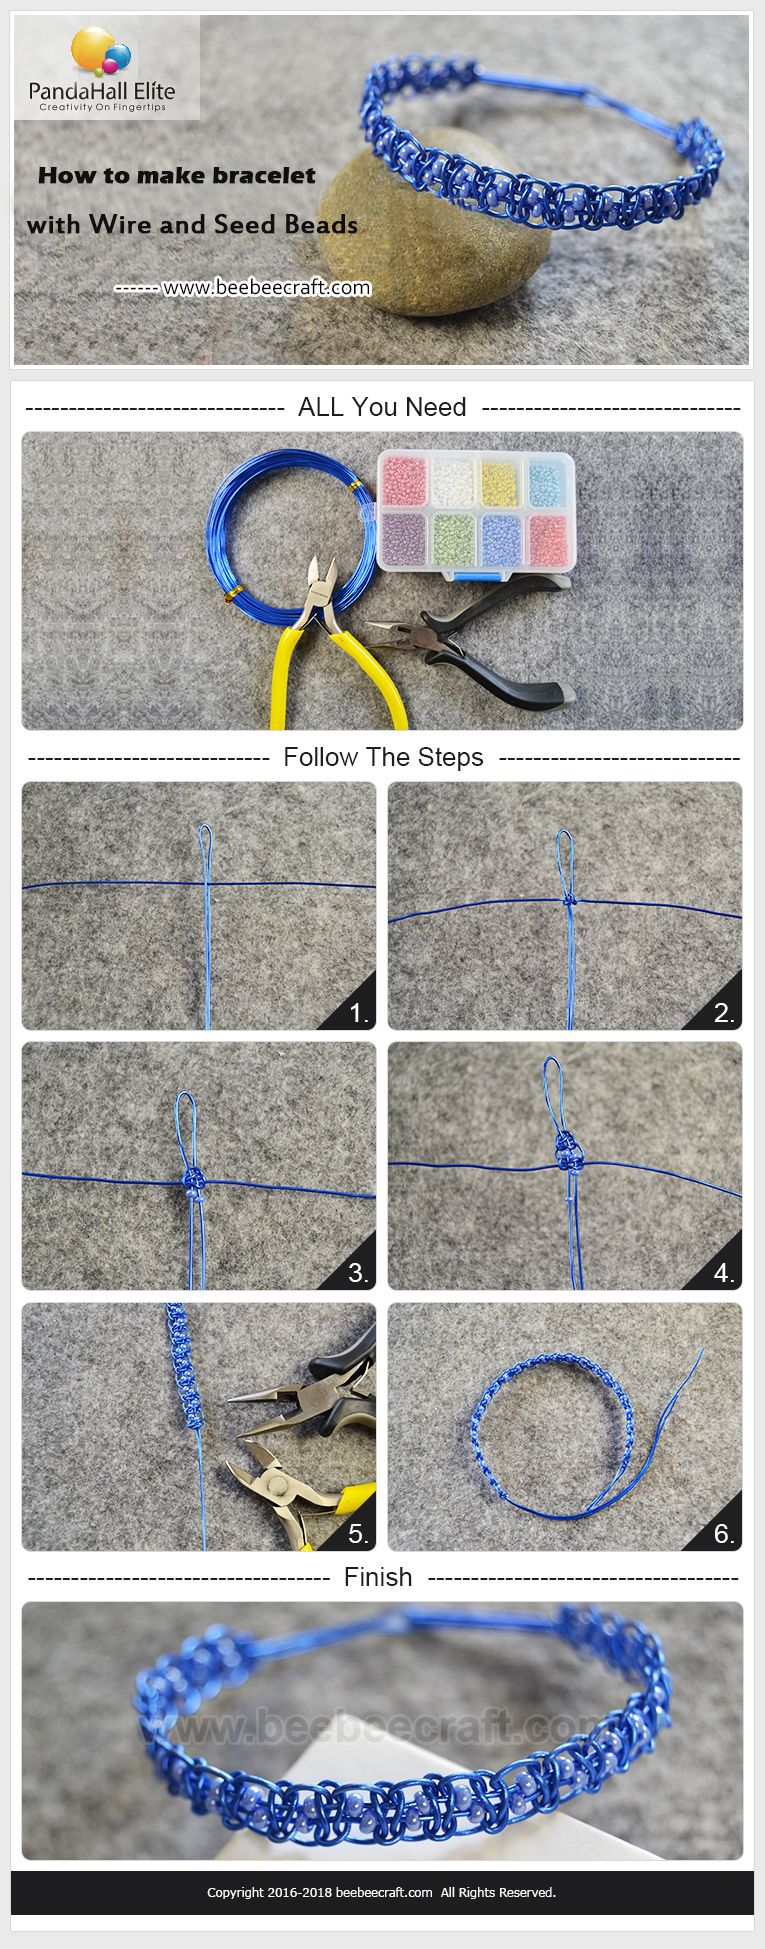 How to make bracelet with beebeecraft wire and seedbeads wire